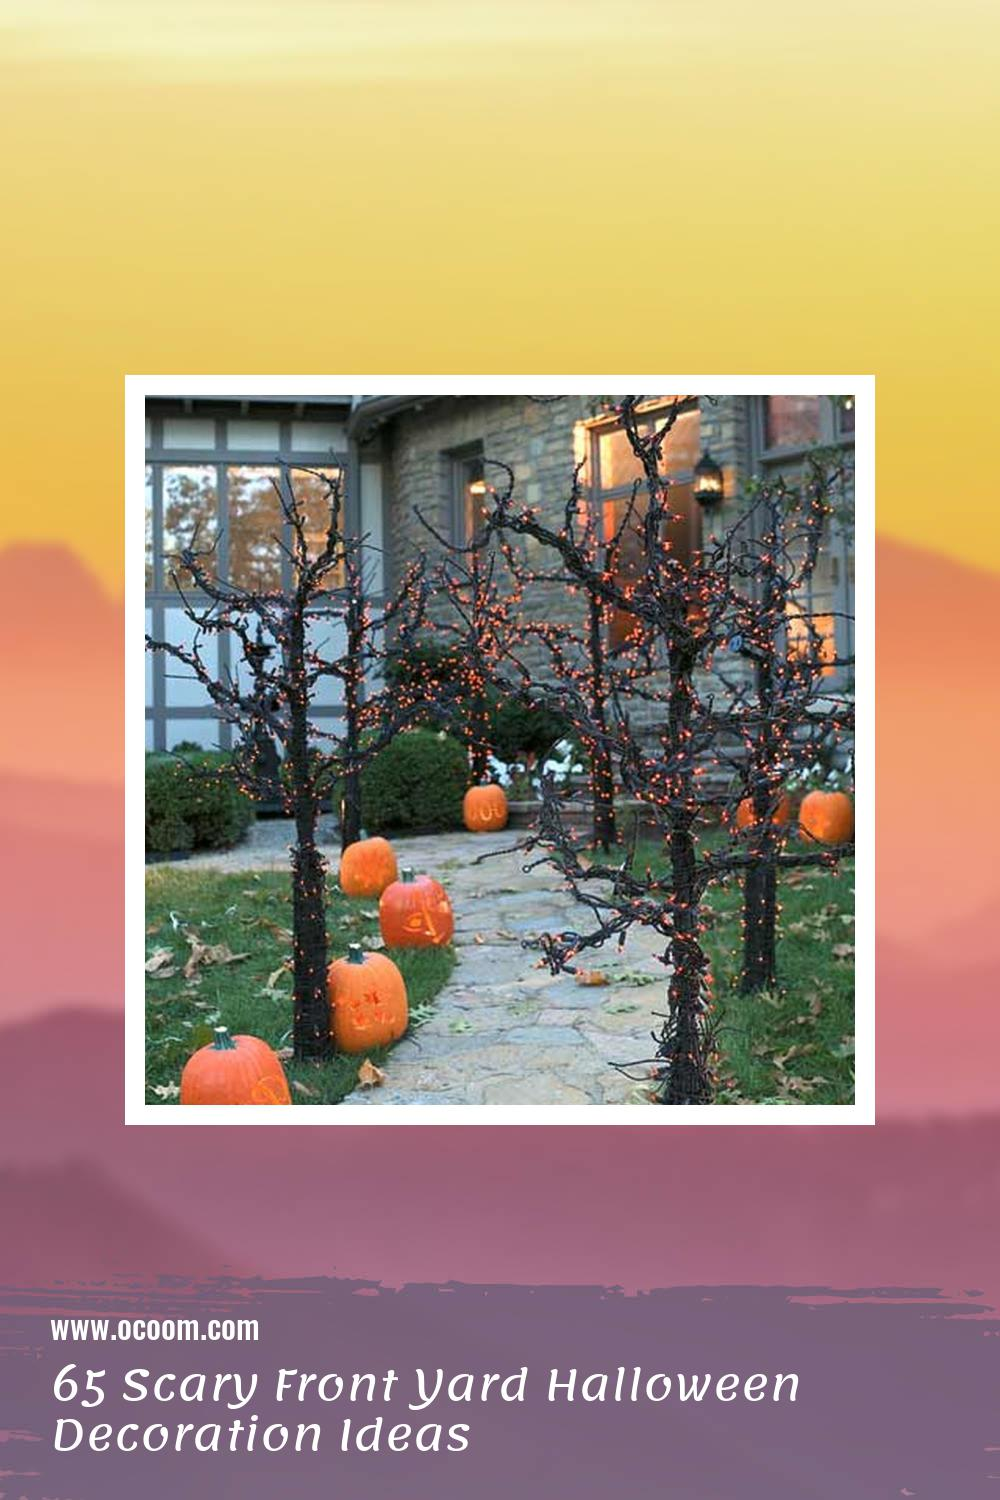 65 Scary Front Yard Halloween Decoration Ideas 62